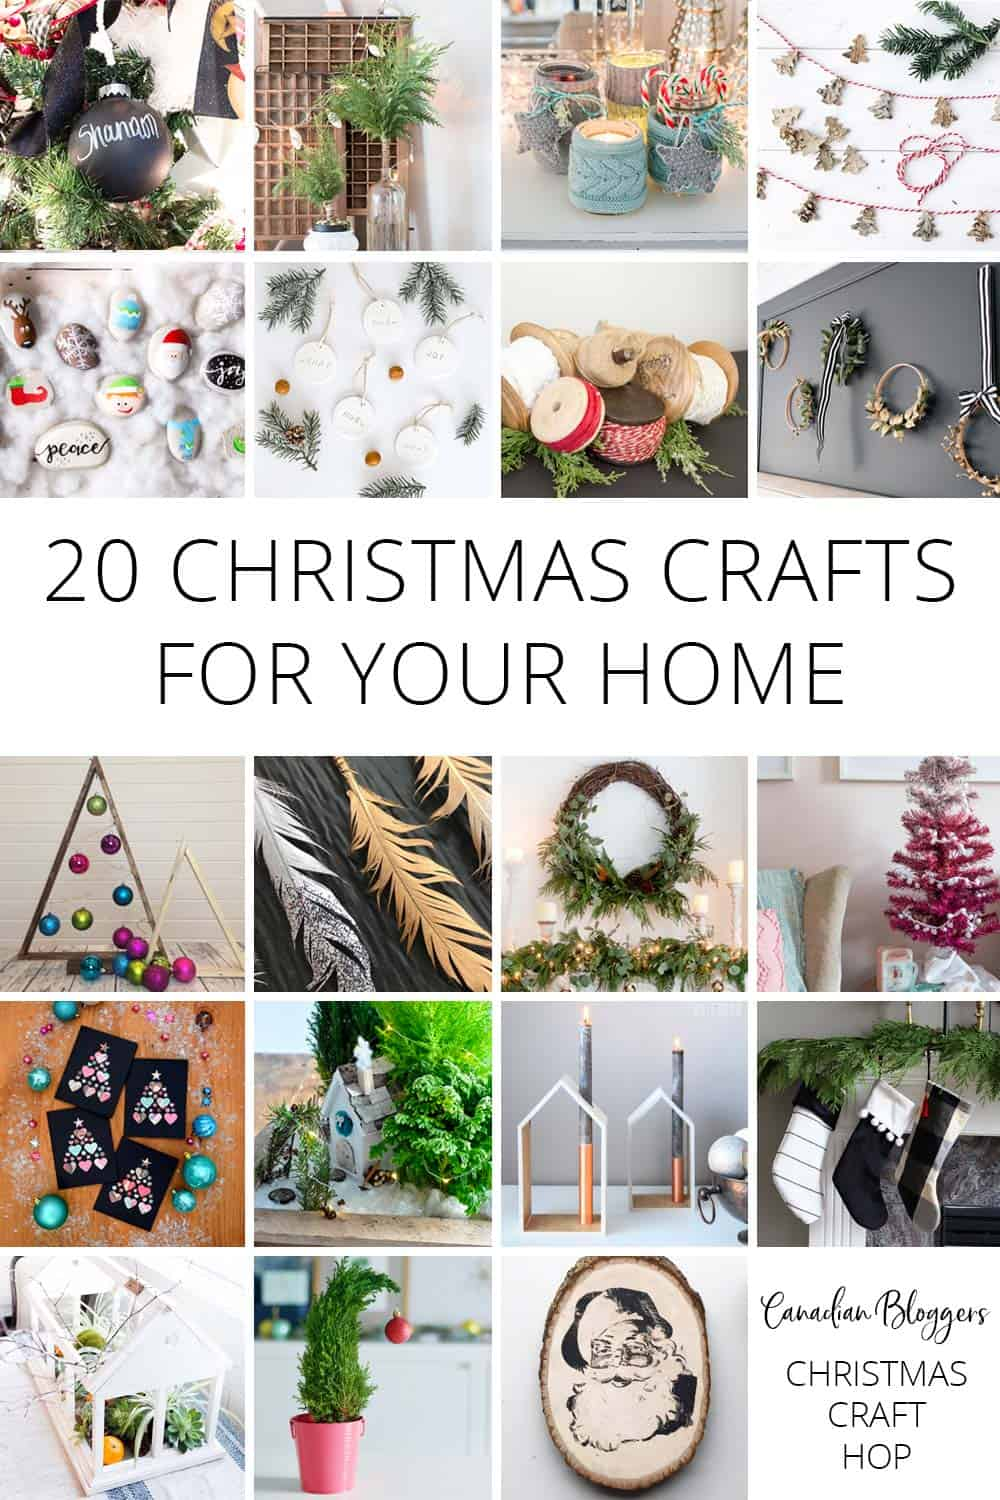 Canadian-Bloggers-Christmas-Hop-2017-collage